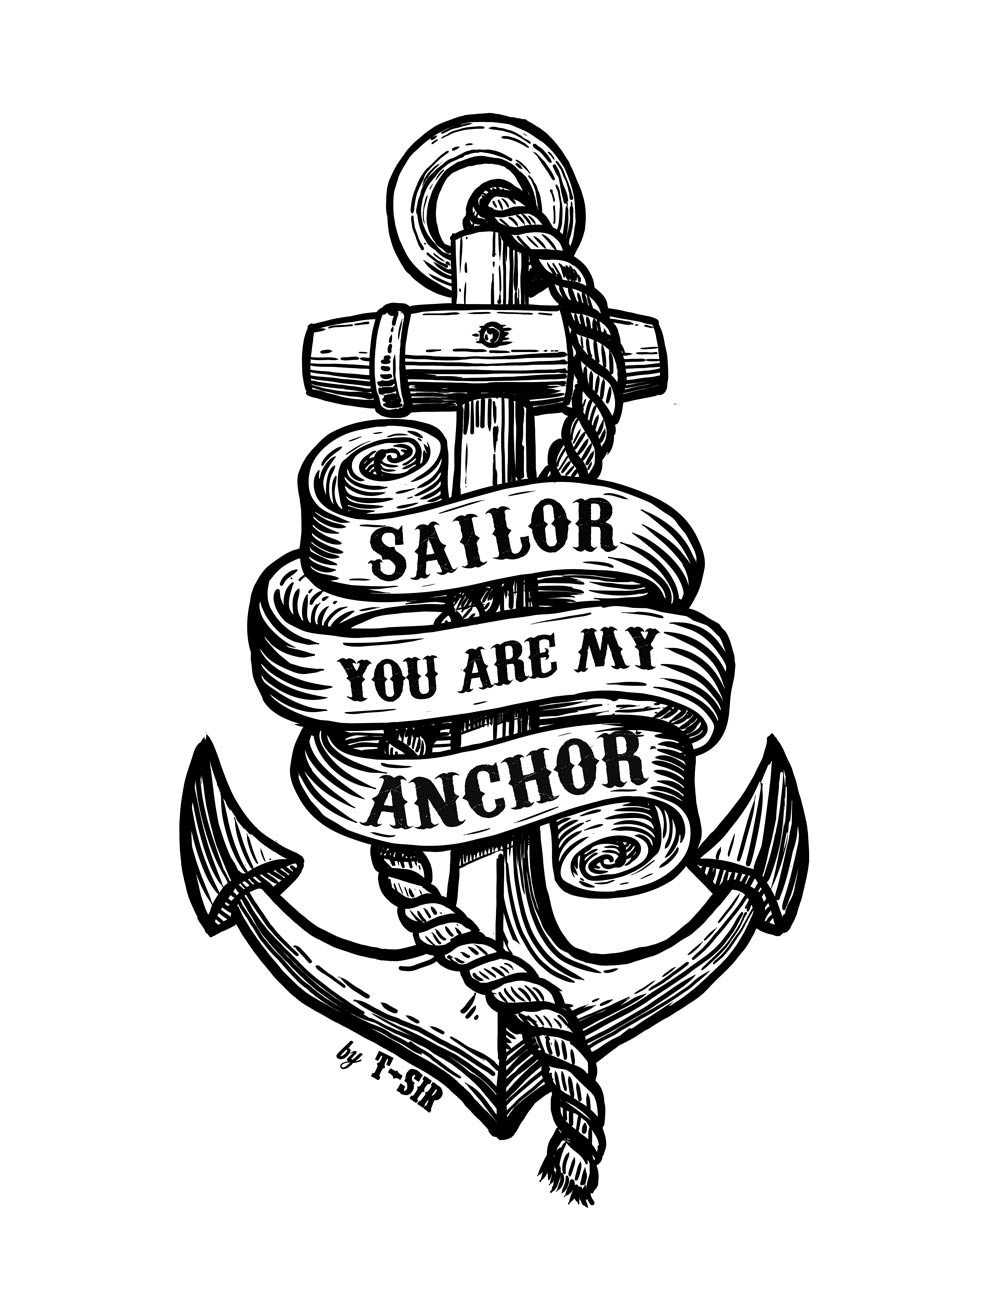 Anchor T-Sir design | Oscar Postigo